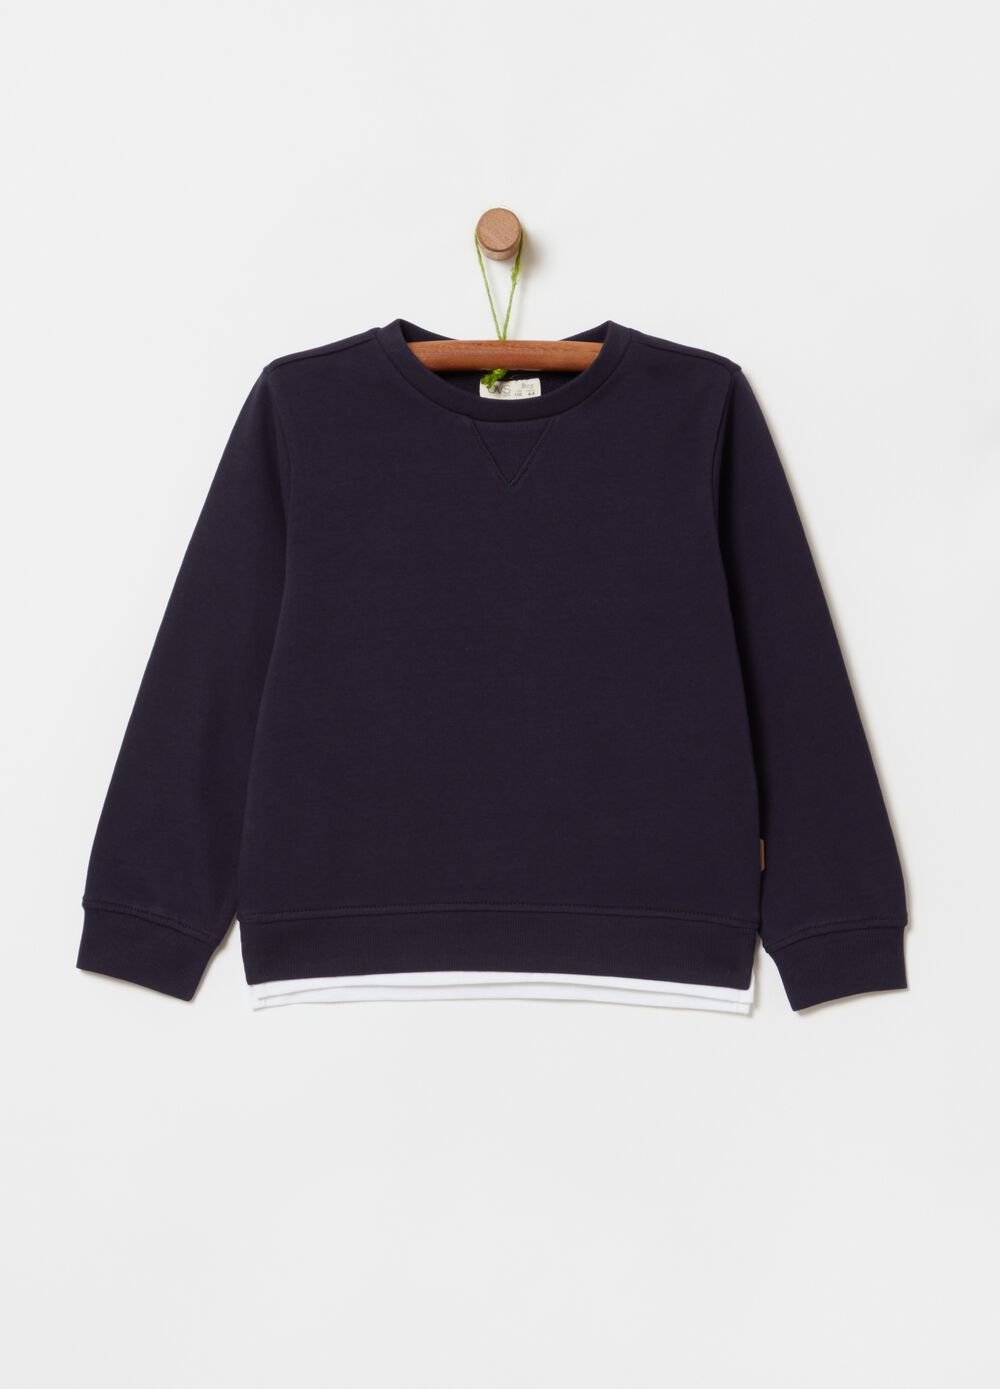 Solid colour 100% cotton sweatshirt